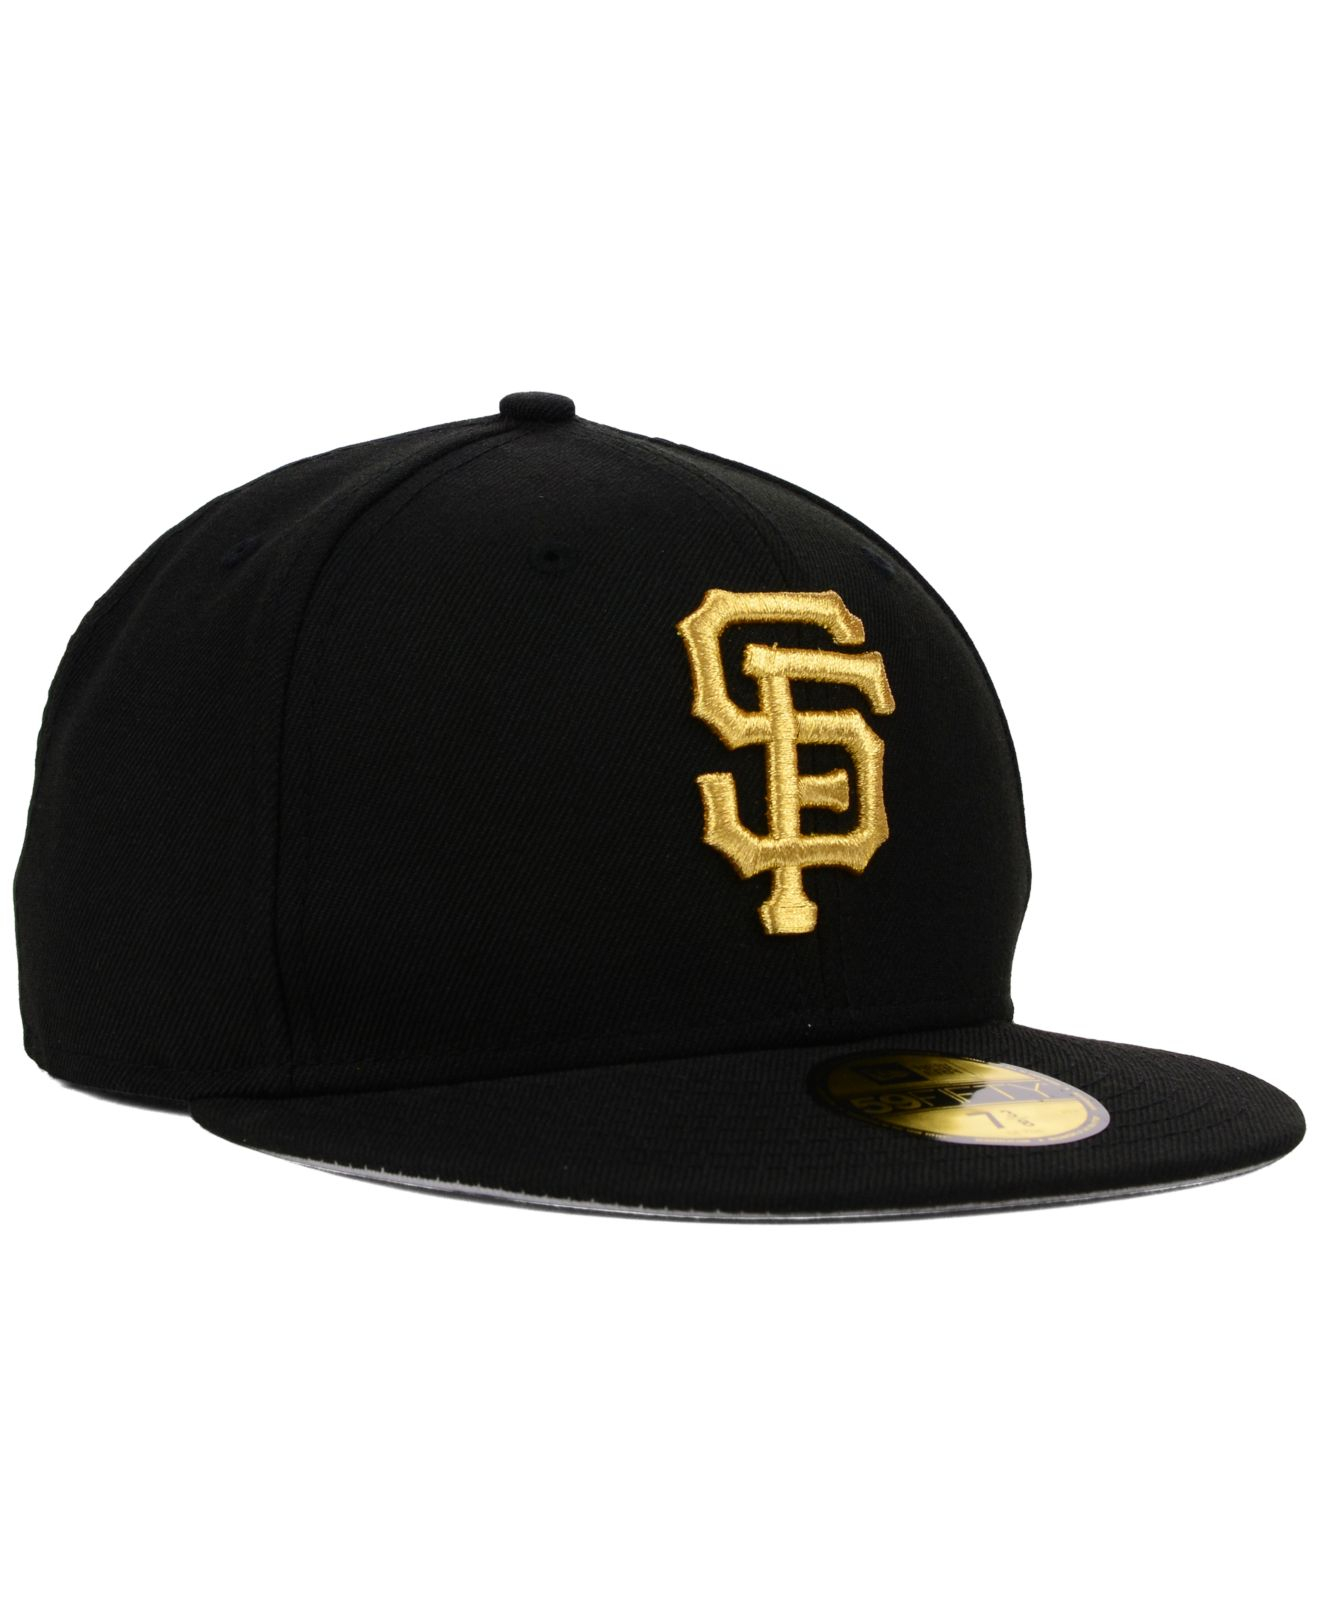 0f40913a6c6 ... norway lyst ktz san francisco giants gold 59fifty cap in black for men  a7850 ed7ee